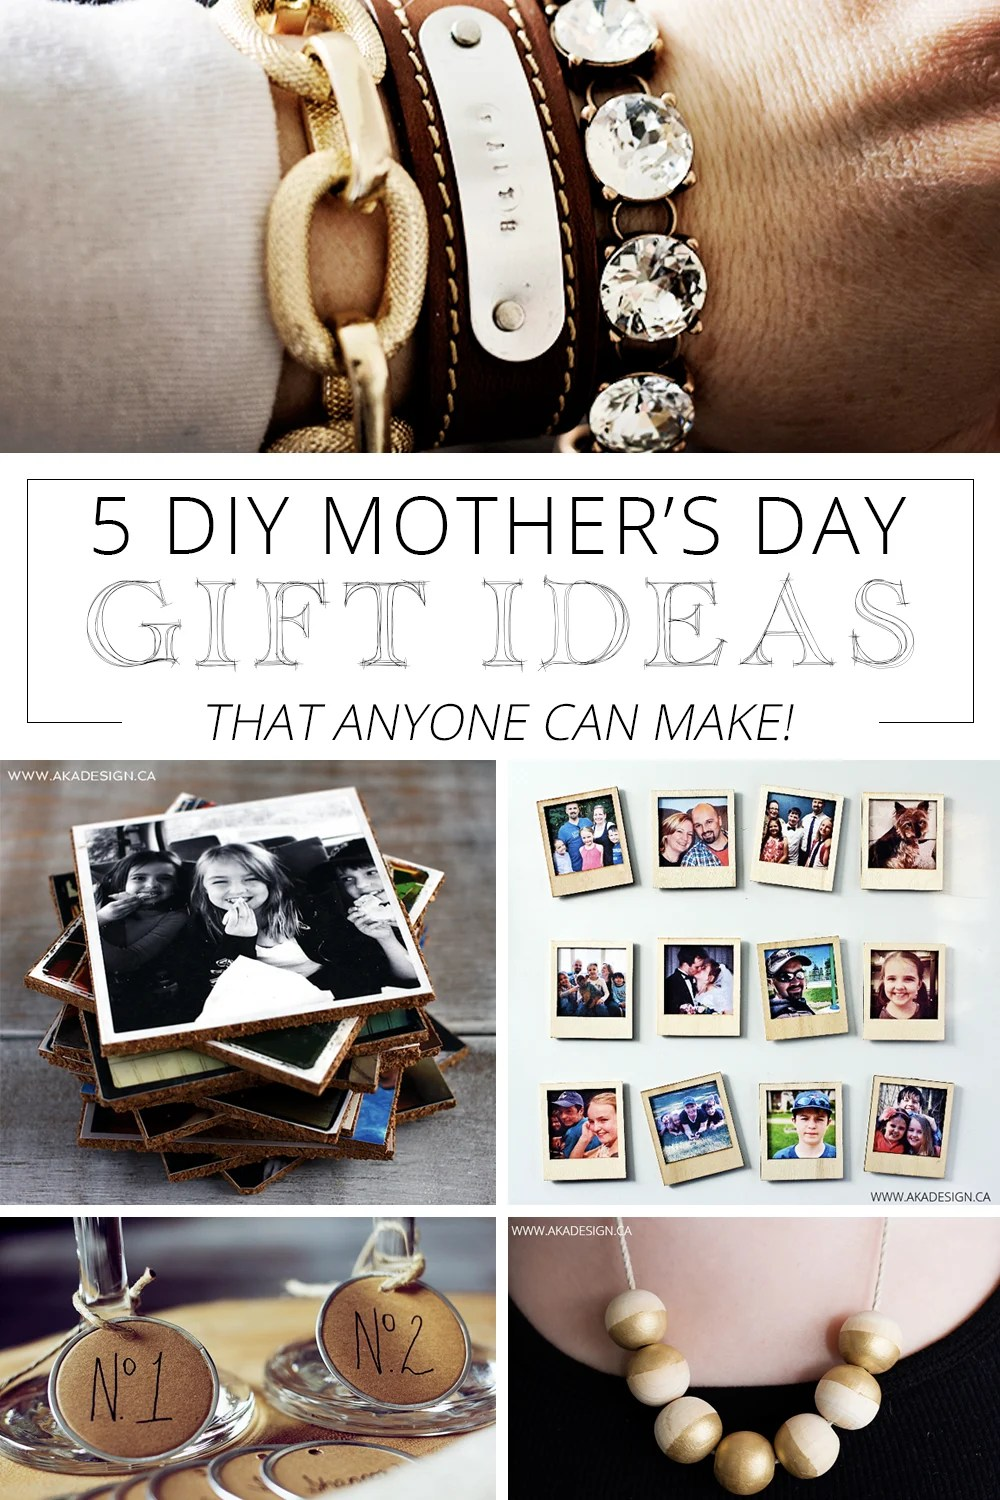 5 mother's day gift ideas anyone can make